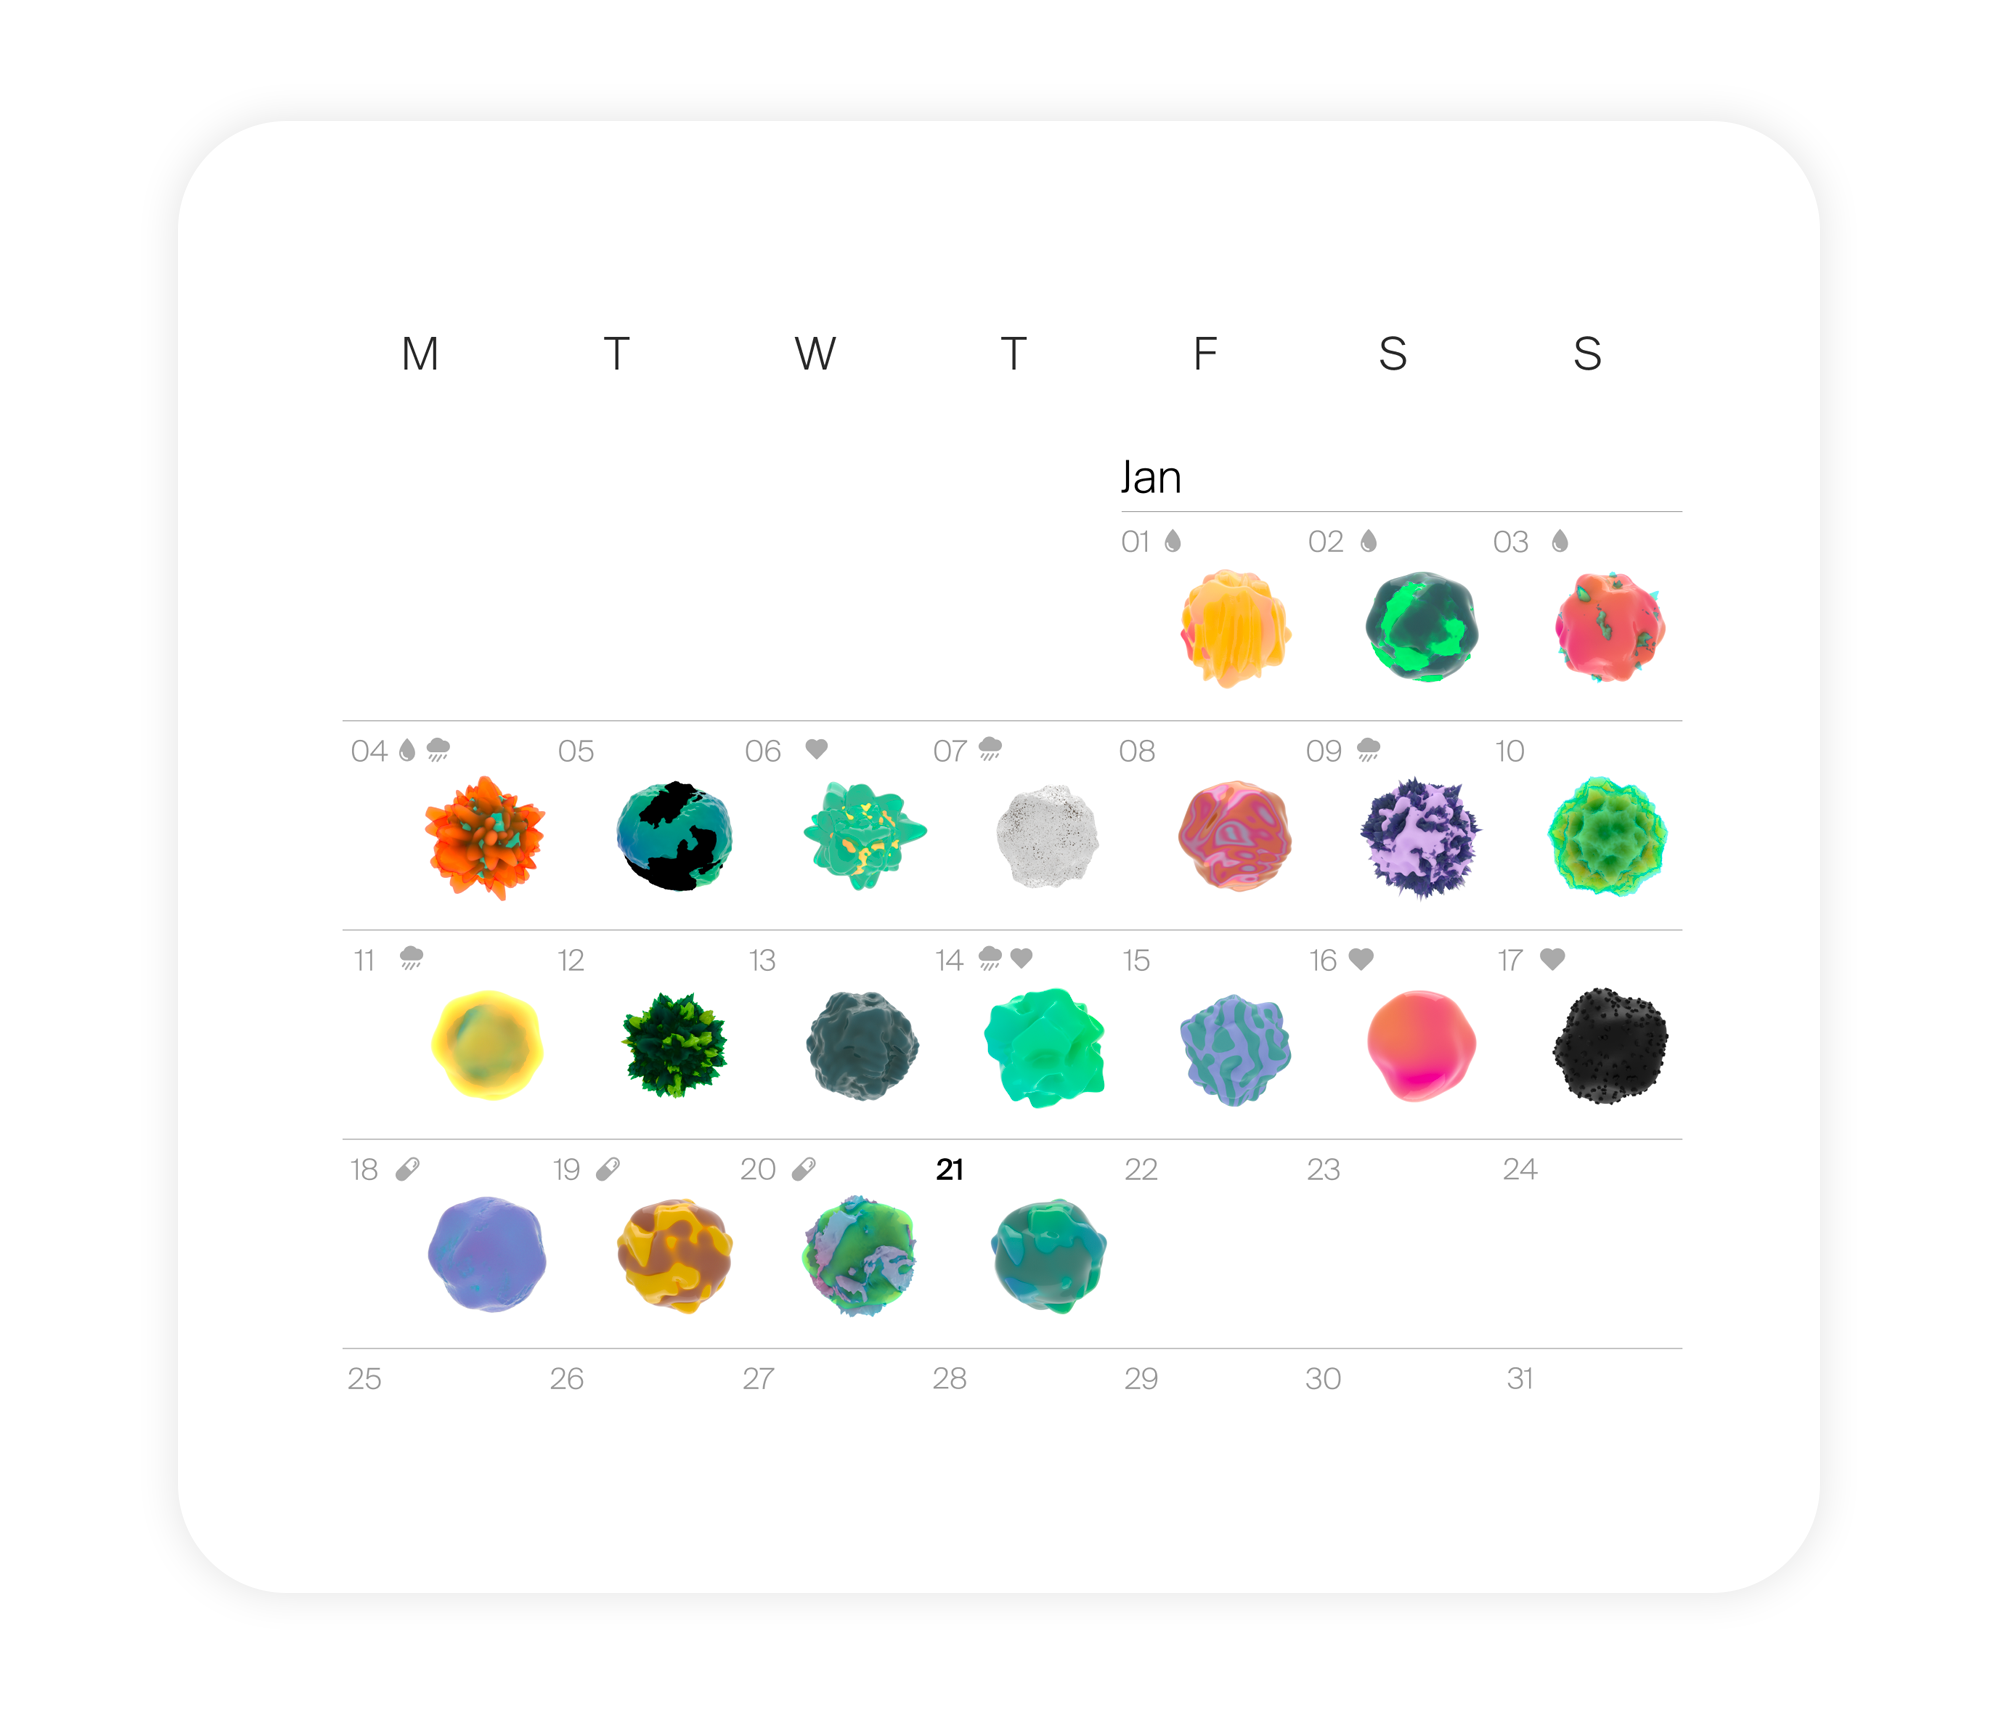 Calendar with decorative 3D visuals on each day.